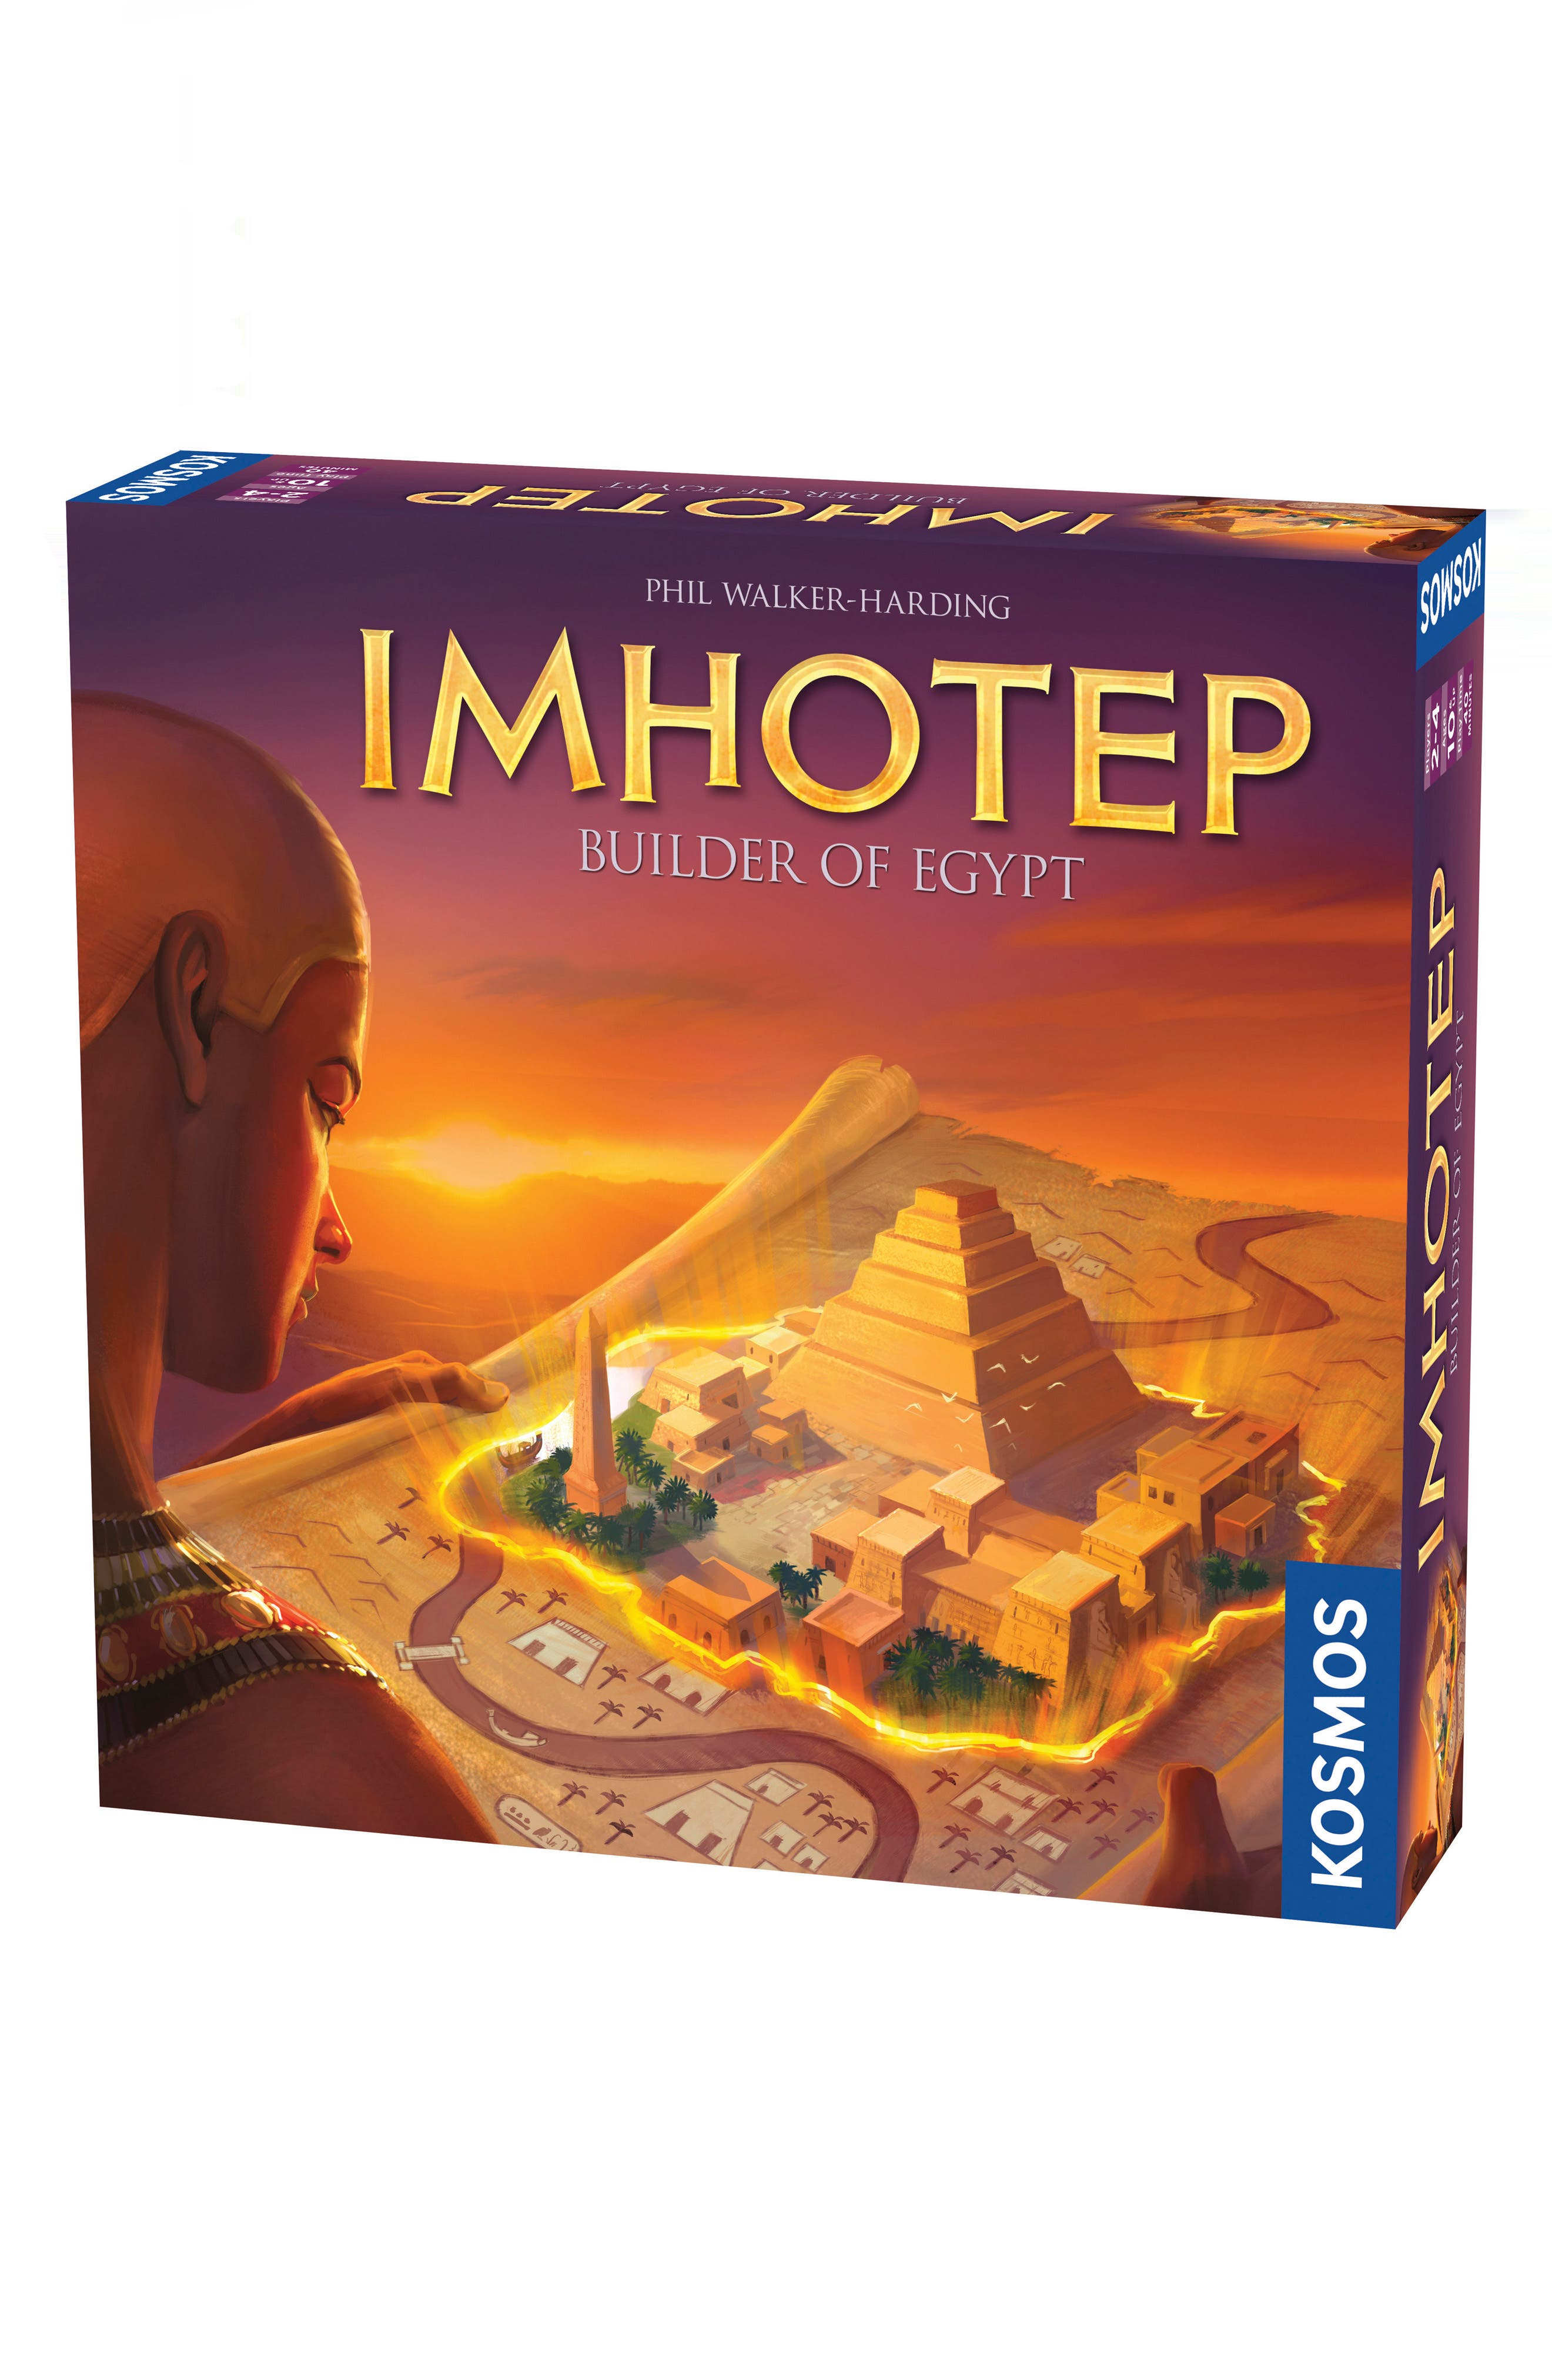 Alternate Image 1 Selected - Thames & Kosmos Imhotep - Builder of Egypt Board Game